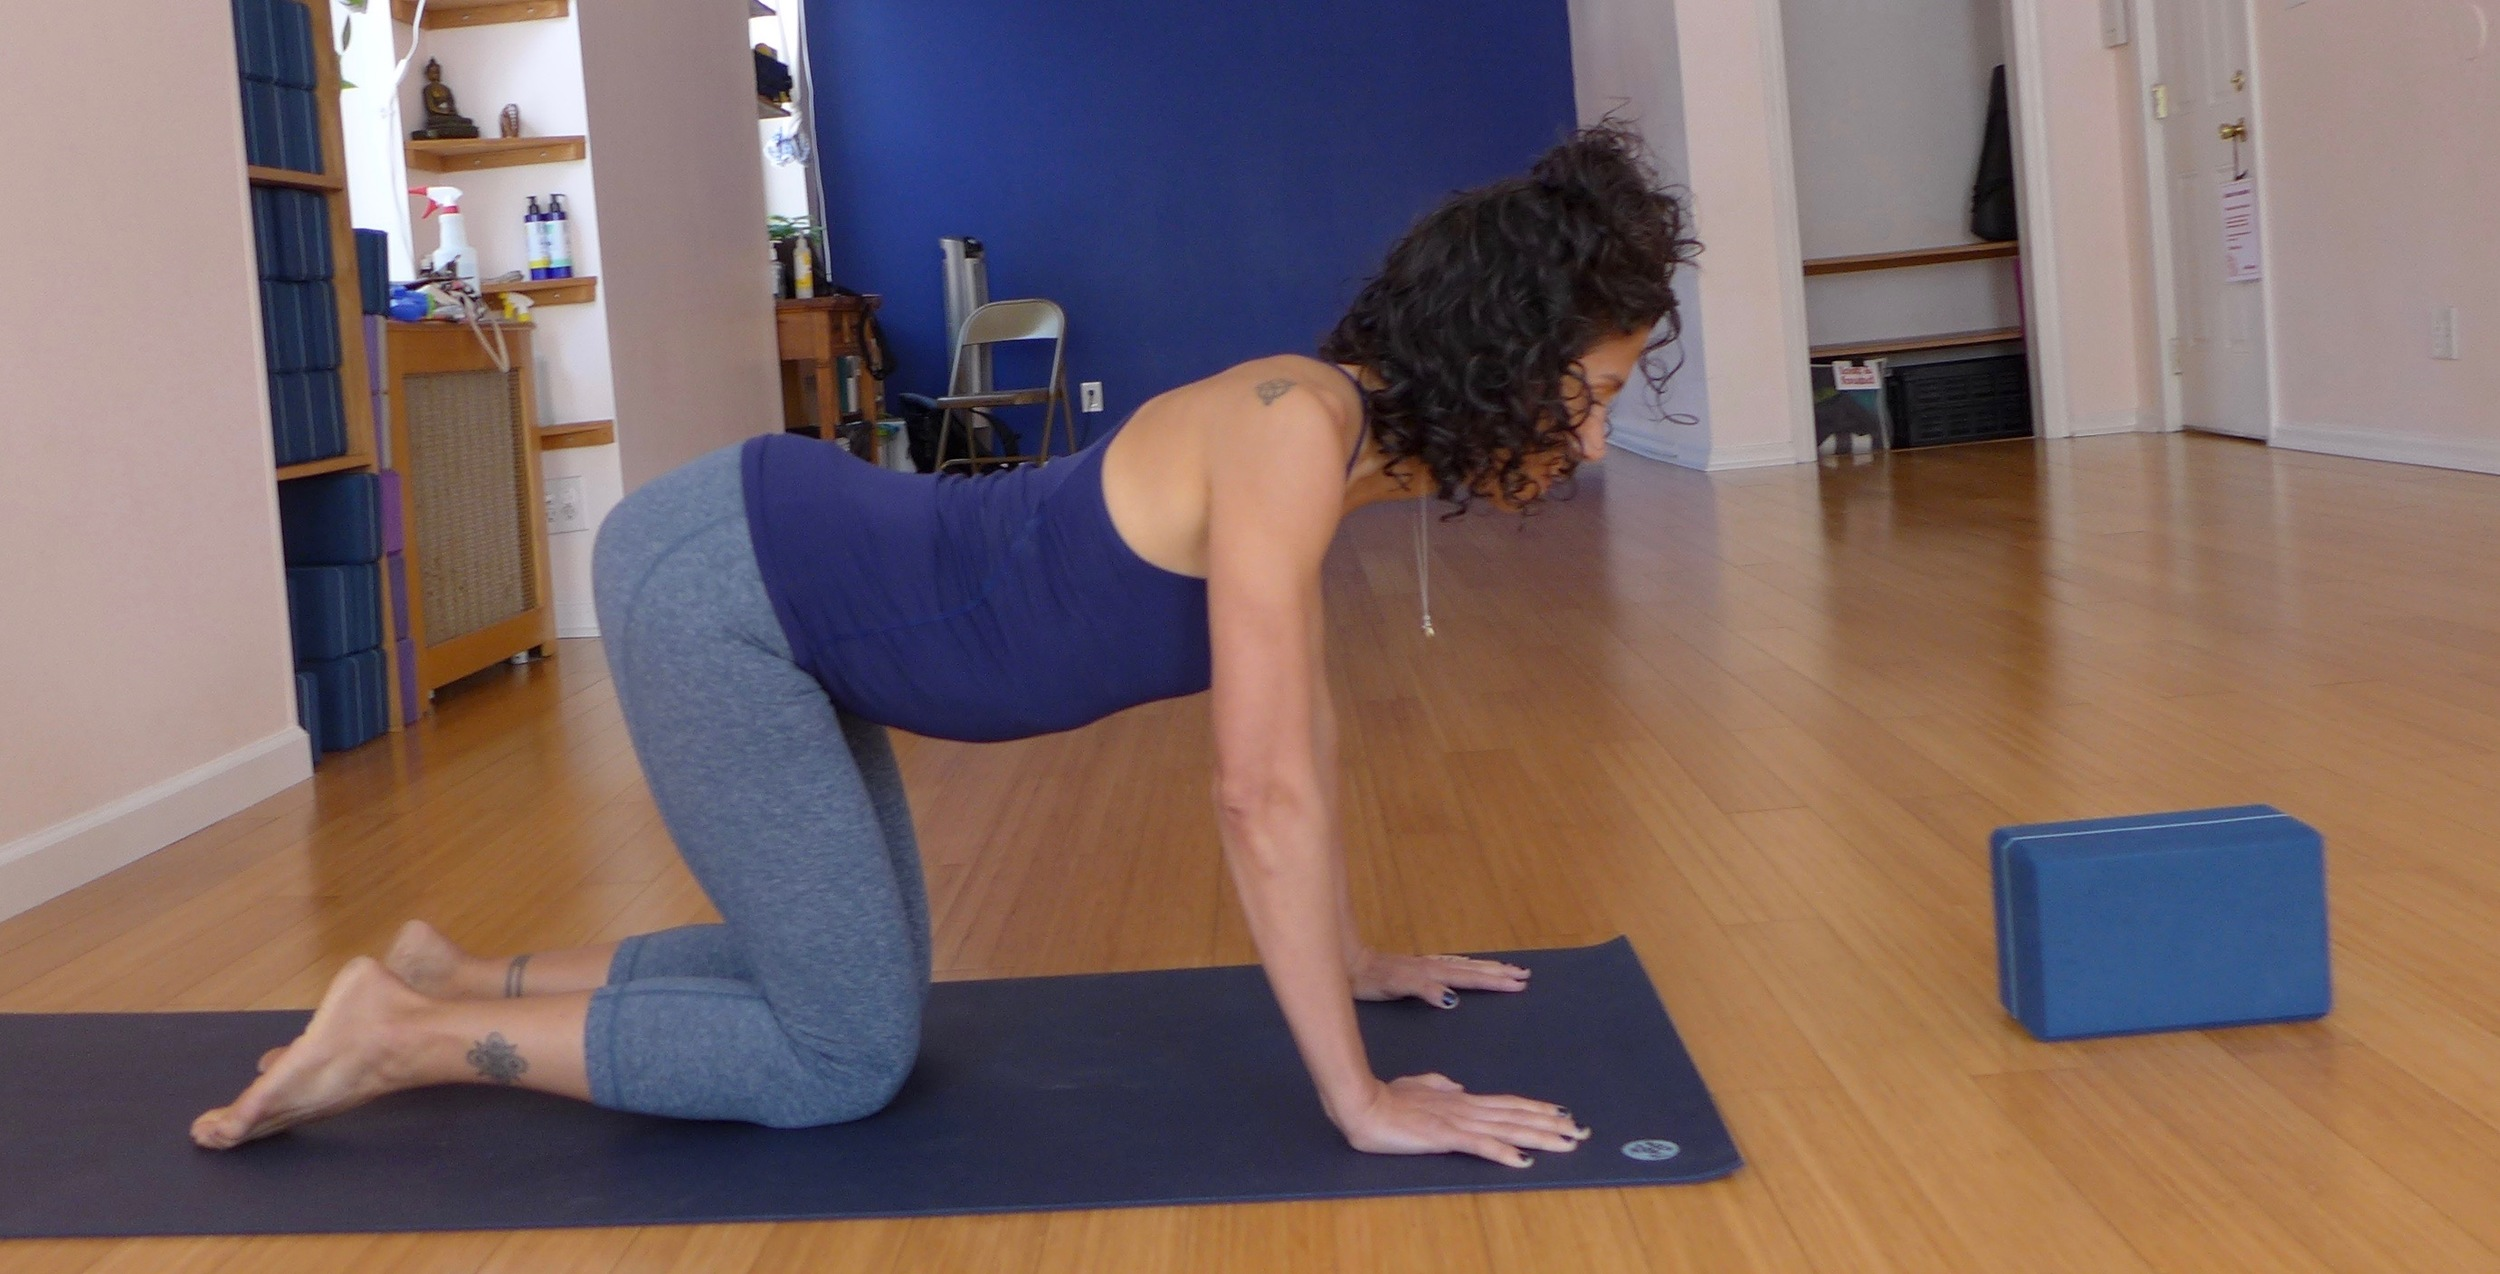 """Cow pose: Here's a visual of what happens when we move our spine towards the floor in cow pose, as opposed to the block at the front of the yoga mat. There's too much compression on the lumbar and cervical disks, and our spine has no support from the arms and legs. Think of your spine as a shoelace you're pulling in opposite directions instead a twisty-tie that you're making into a """"u"""" shape."""